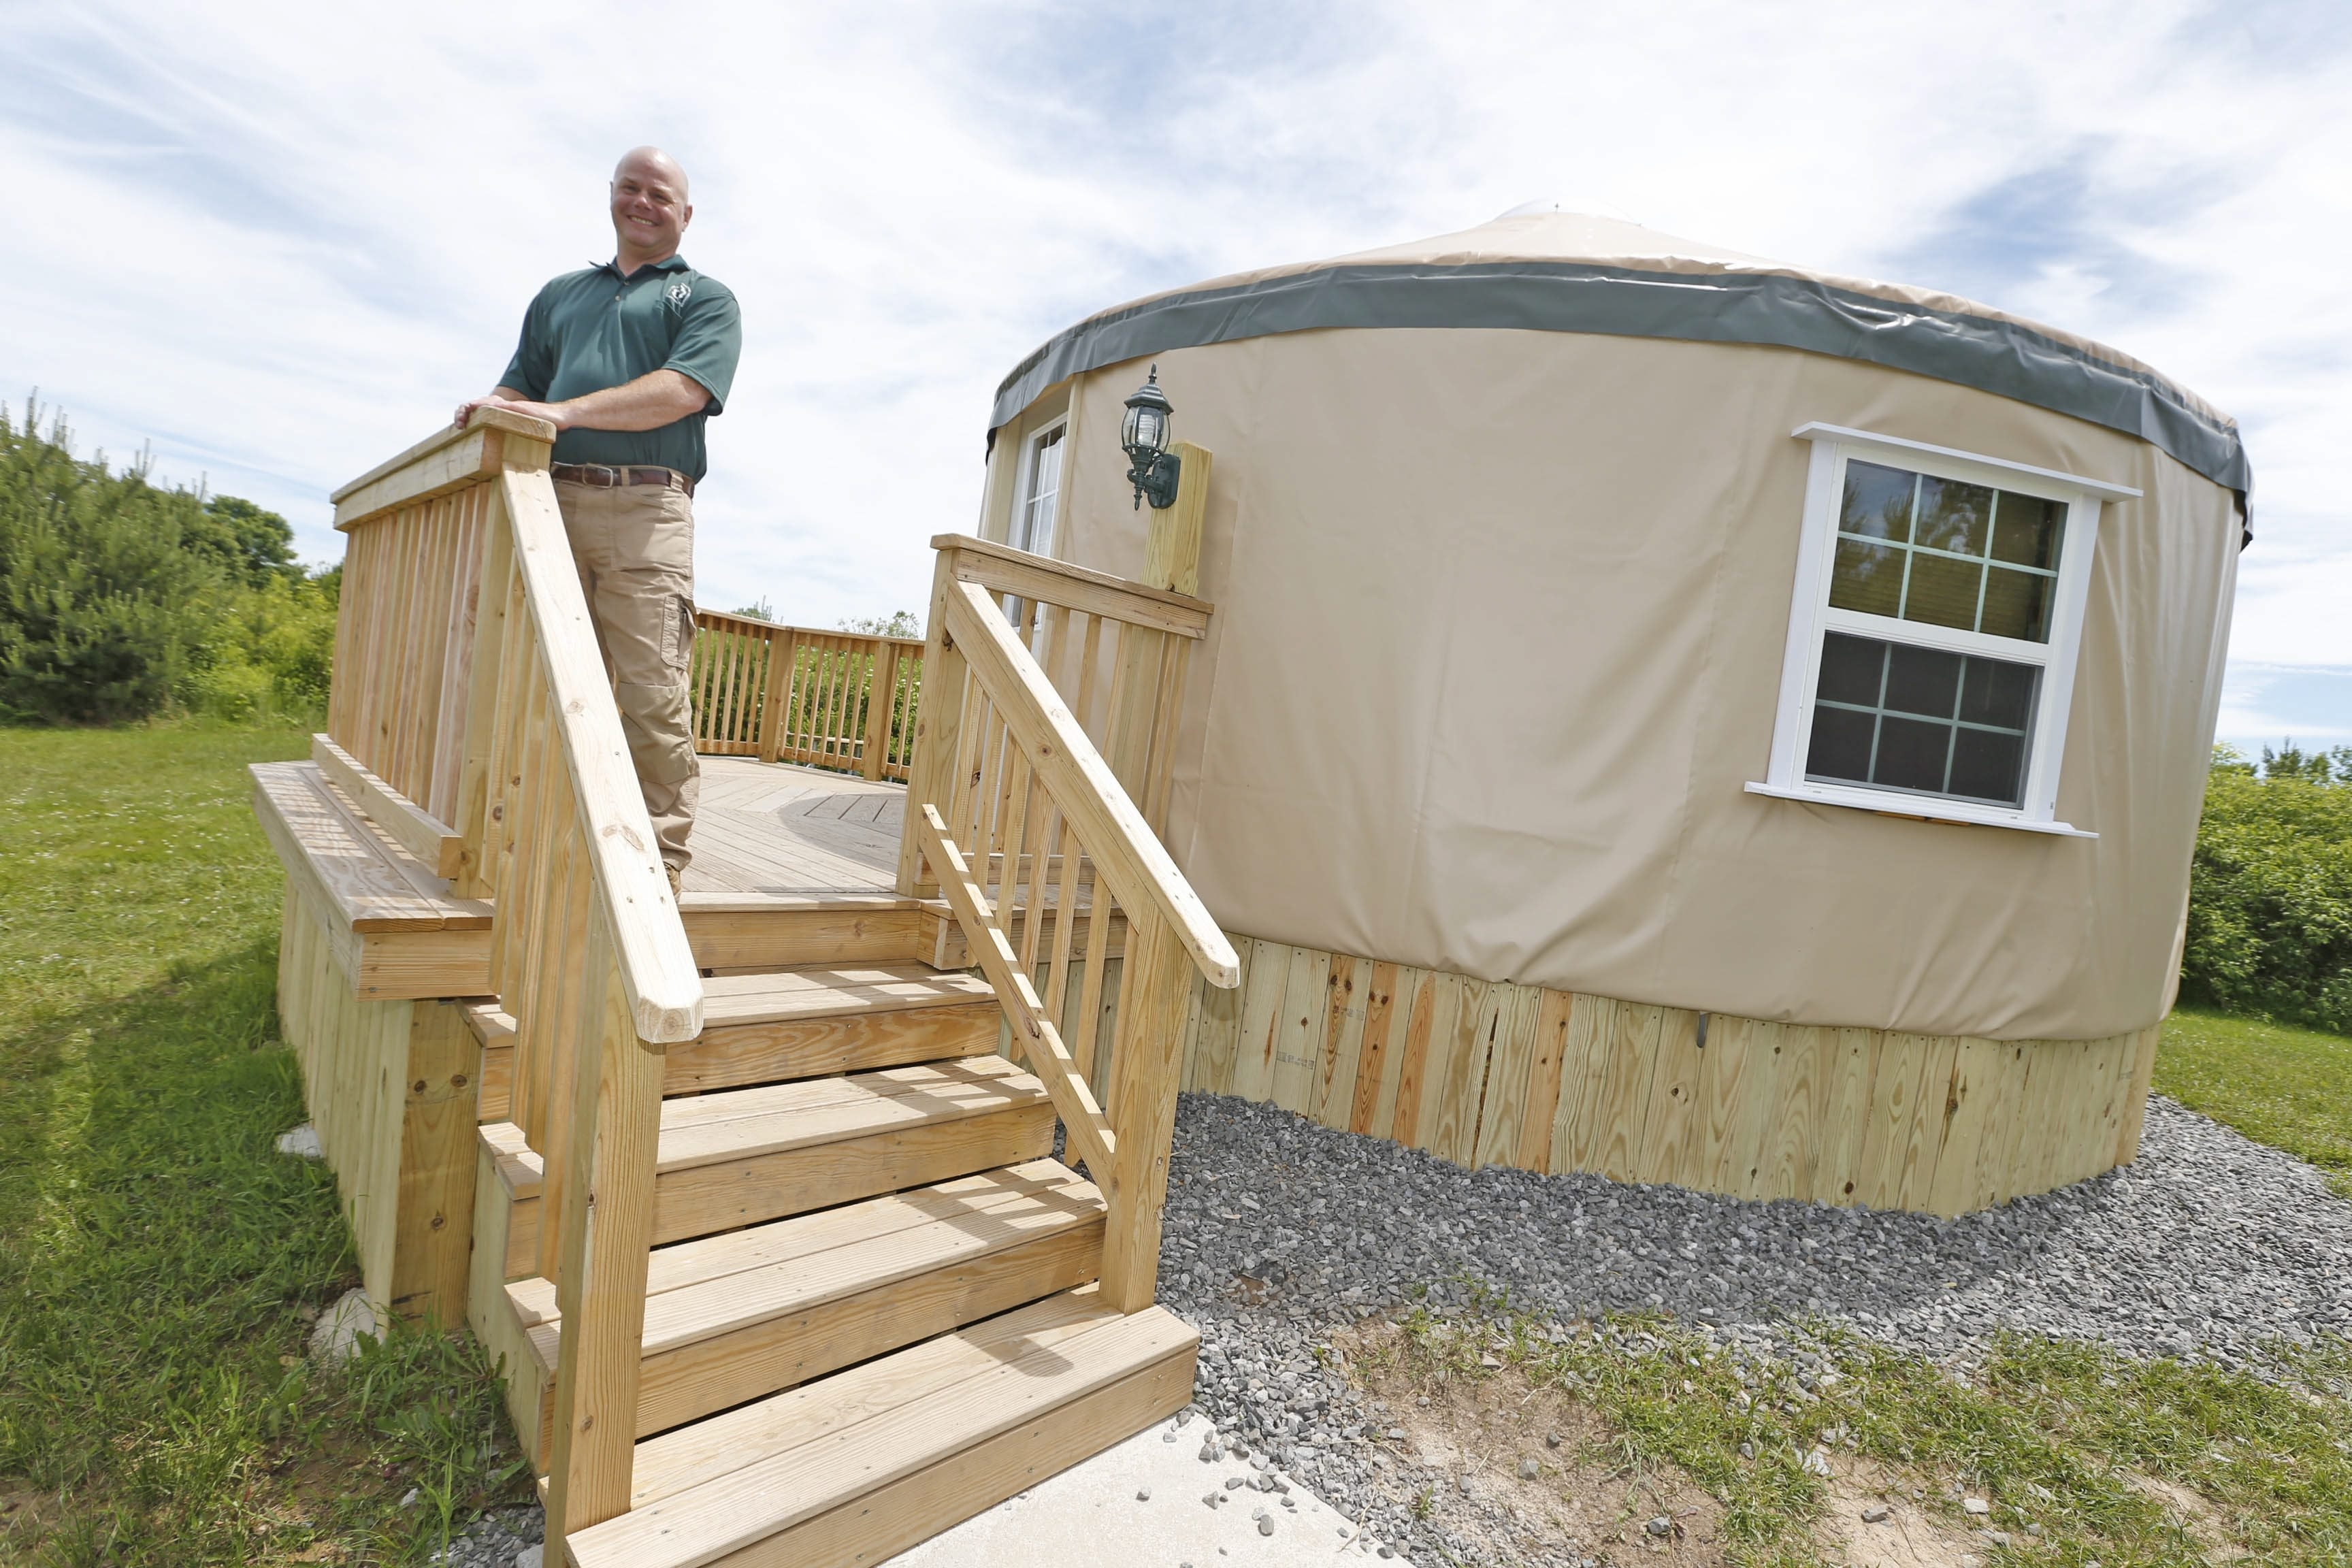 Eric Hoppe, manager at Golden Hill State Park in Barker, says campers who stay in yurts have nice views of Lake Ontario from their decks.